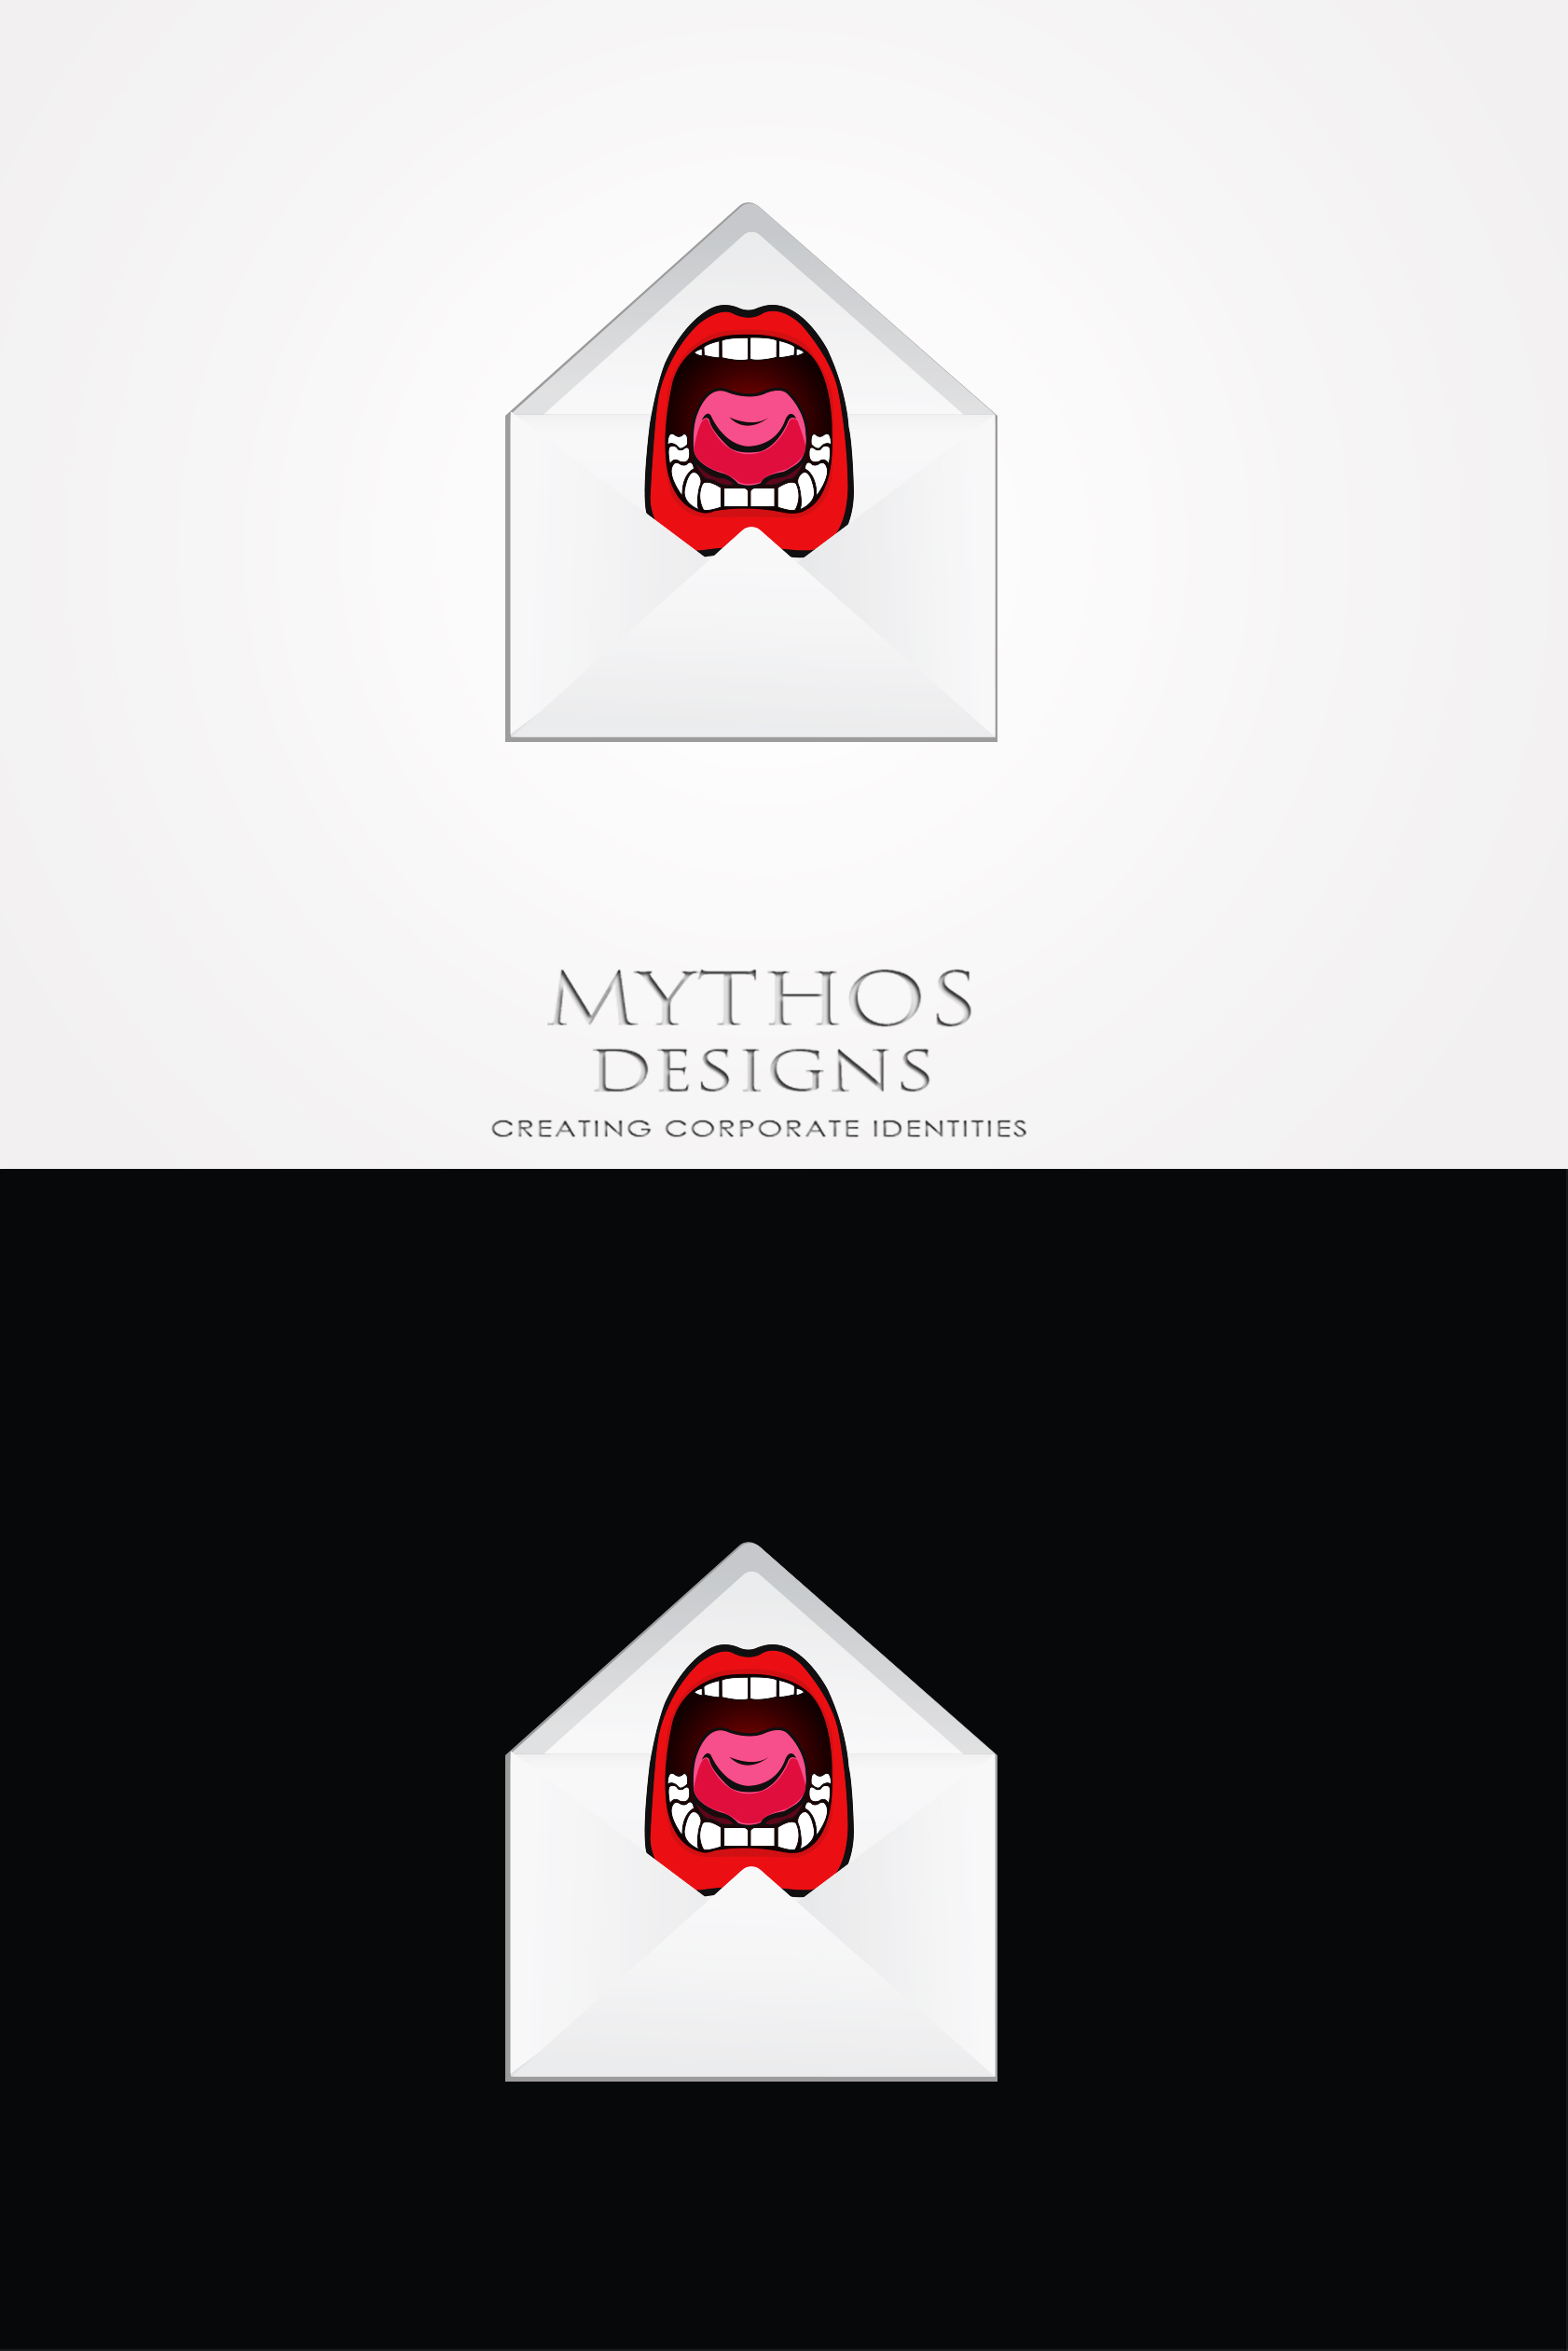 Logo Design by Mythos Designs - Entry No. 94 in the Logo Design Contest Imaginative Logo Design for NoteStream.